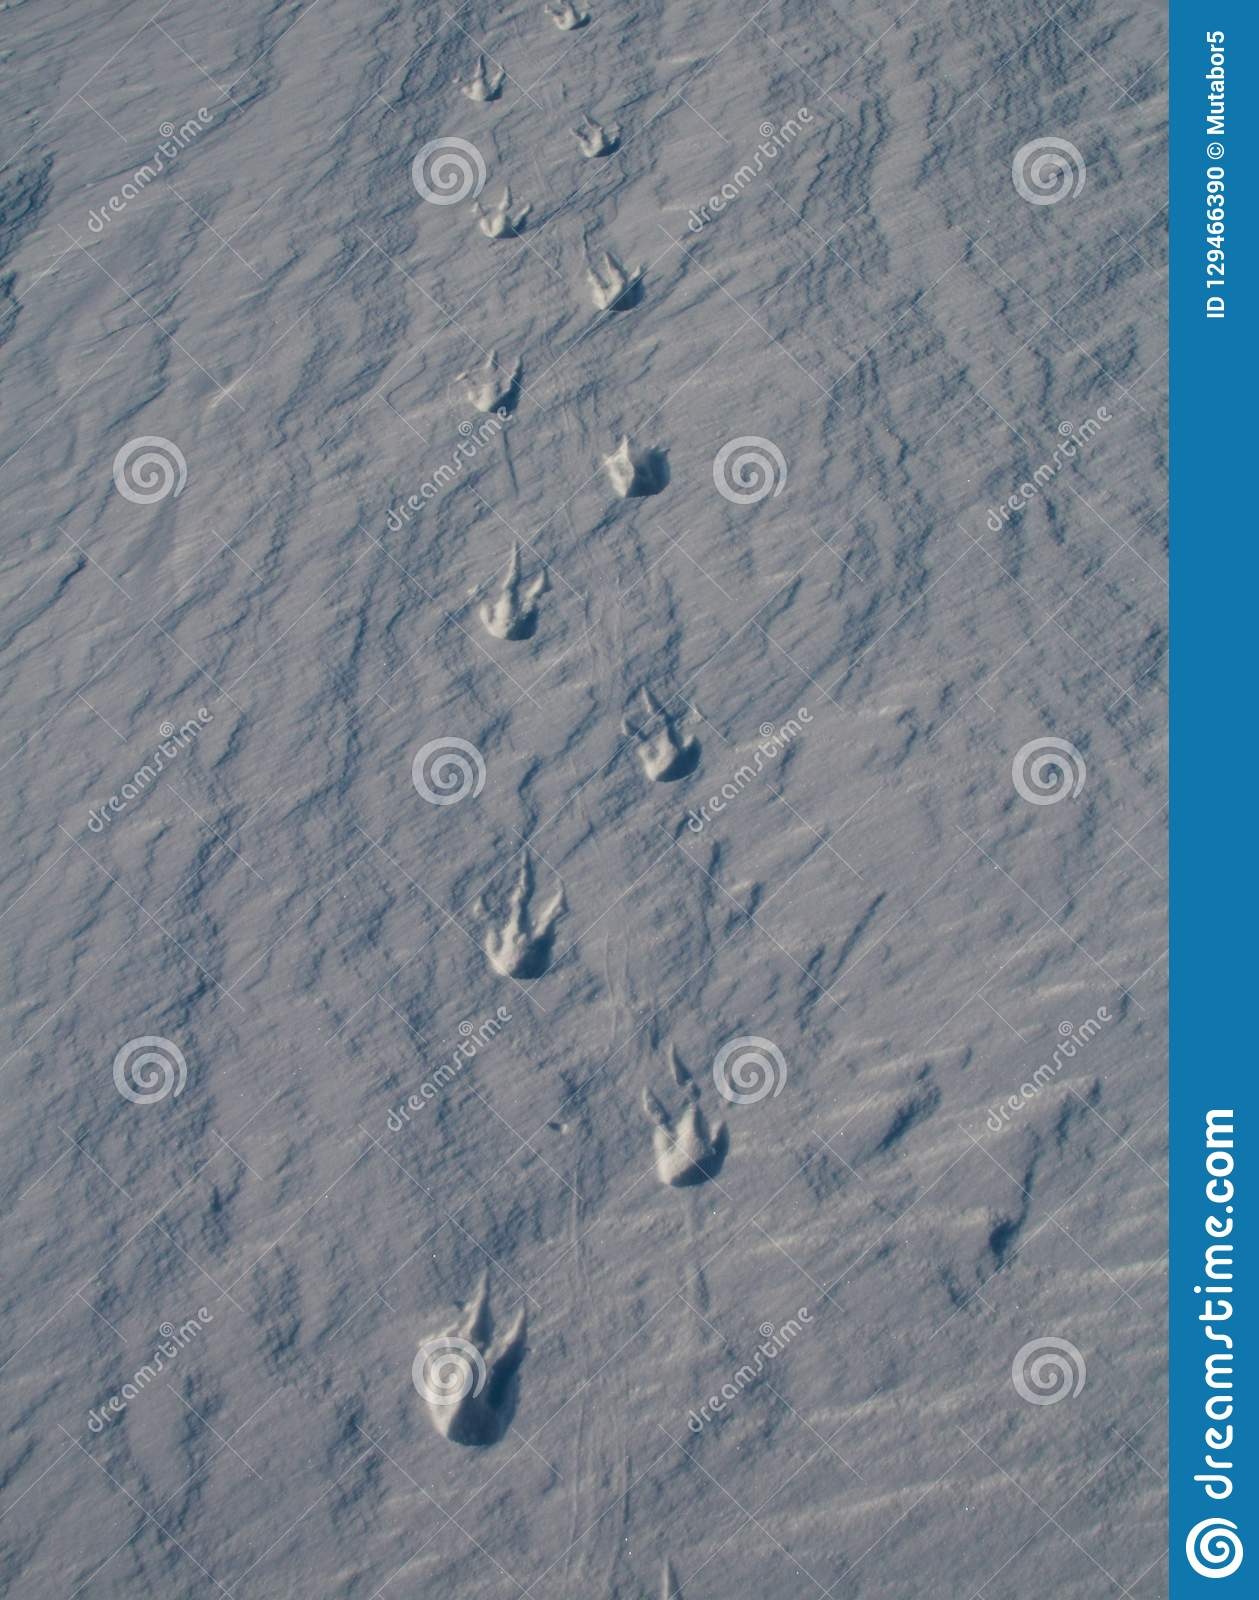 Footprints covered with snow, the Imperial penguin. Snowy landscape